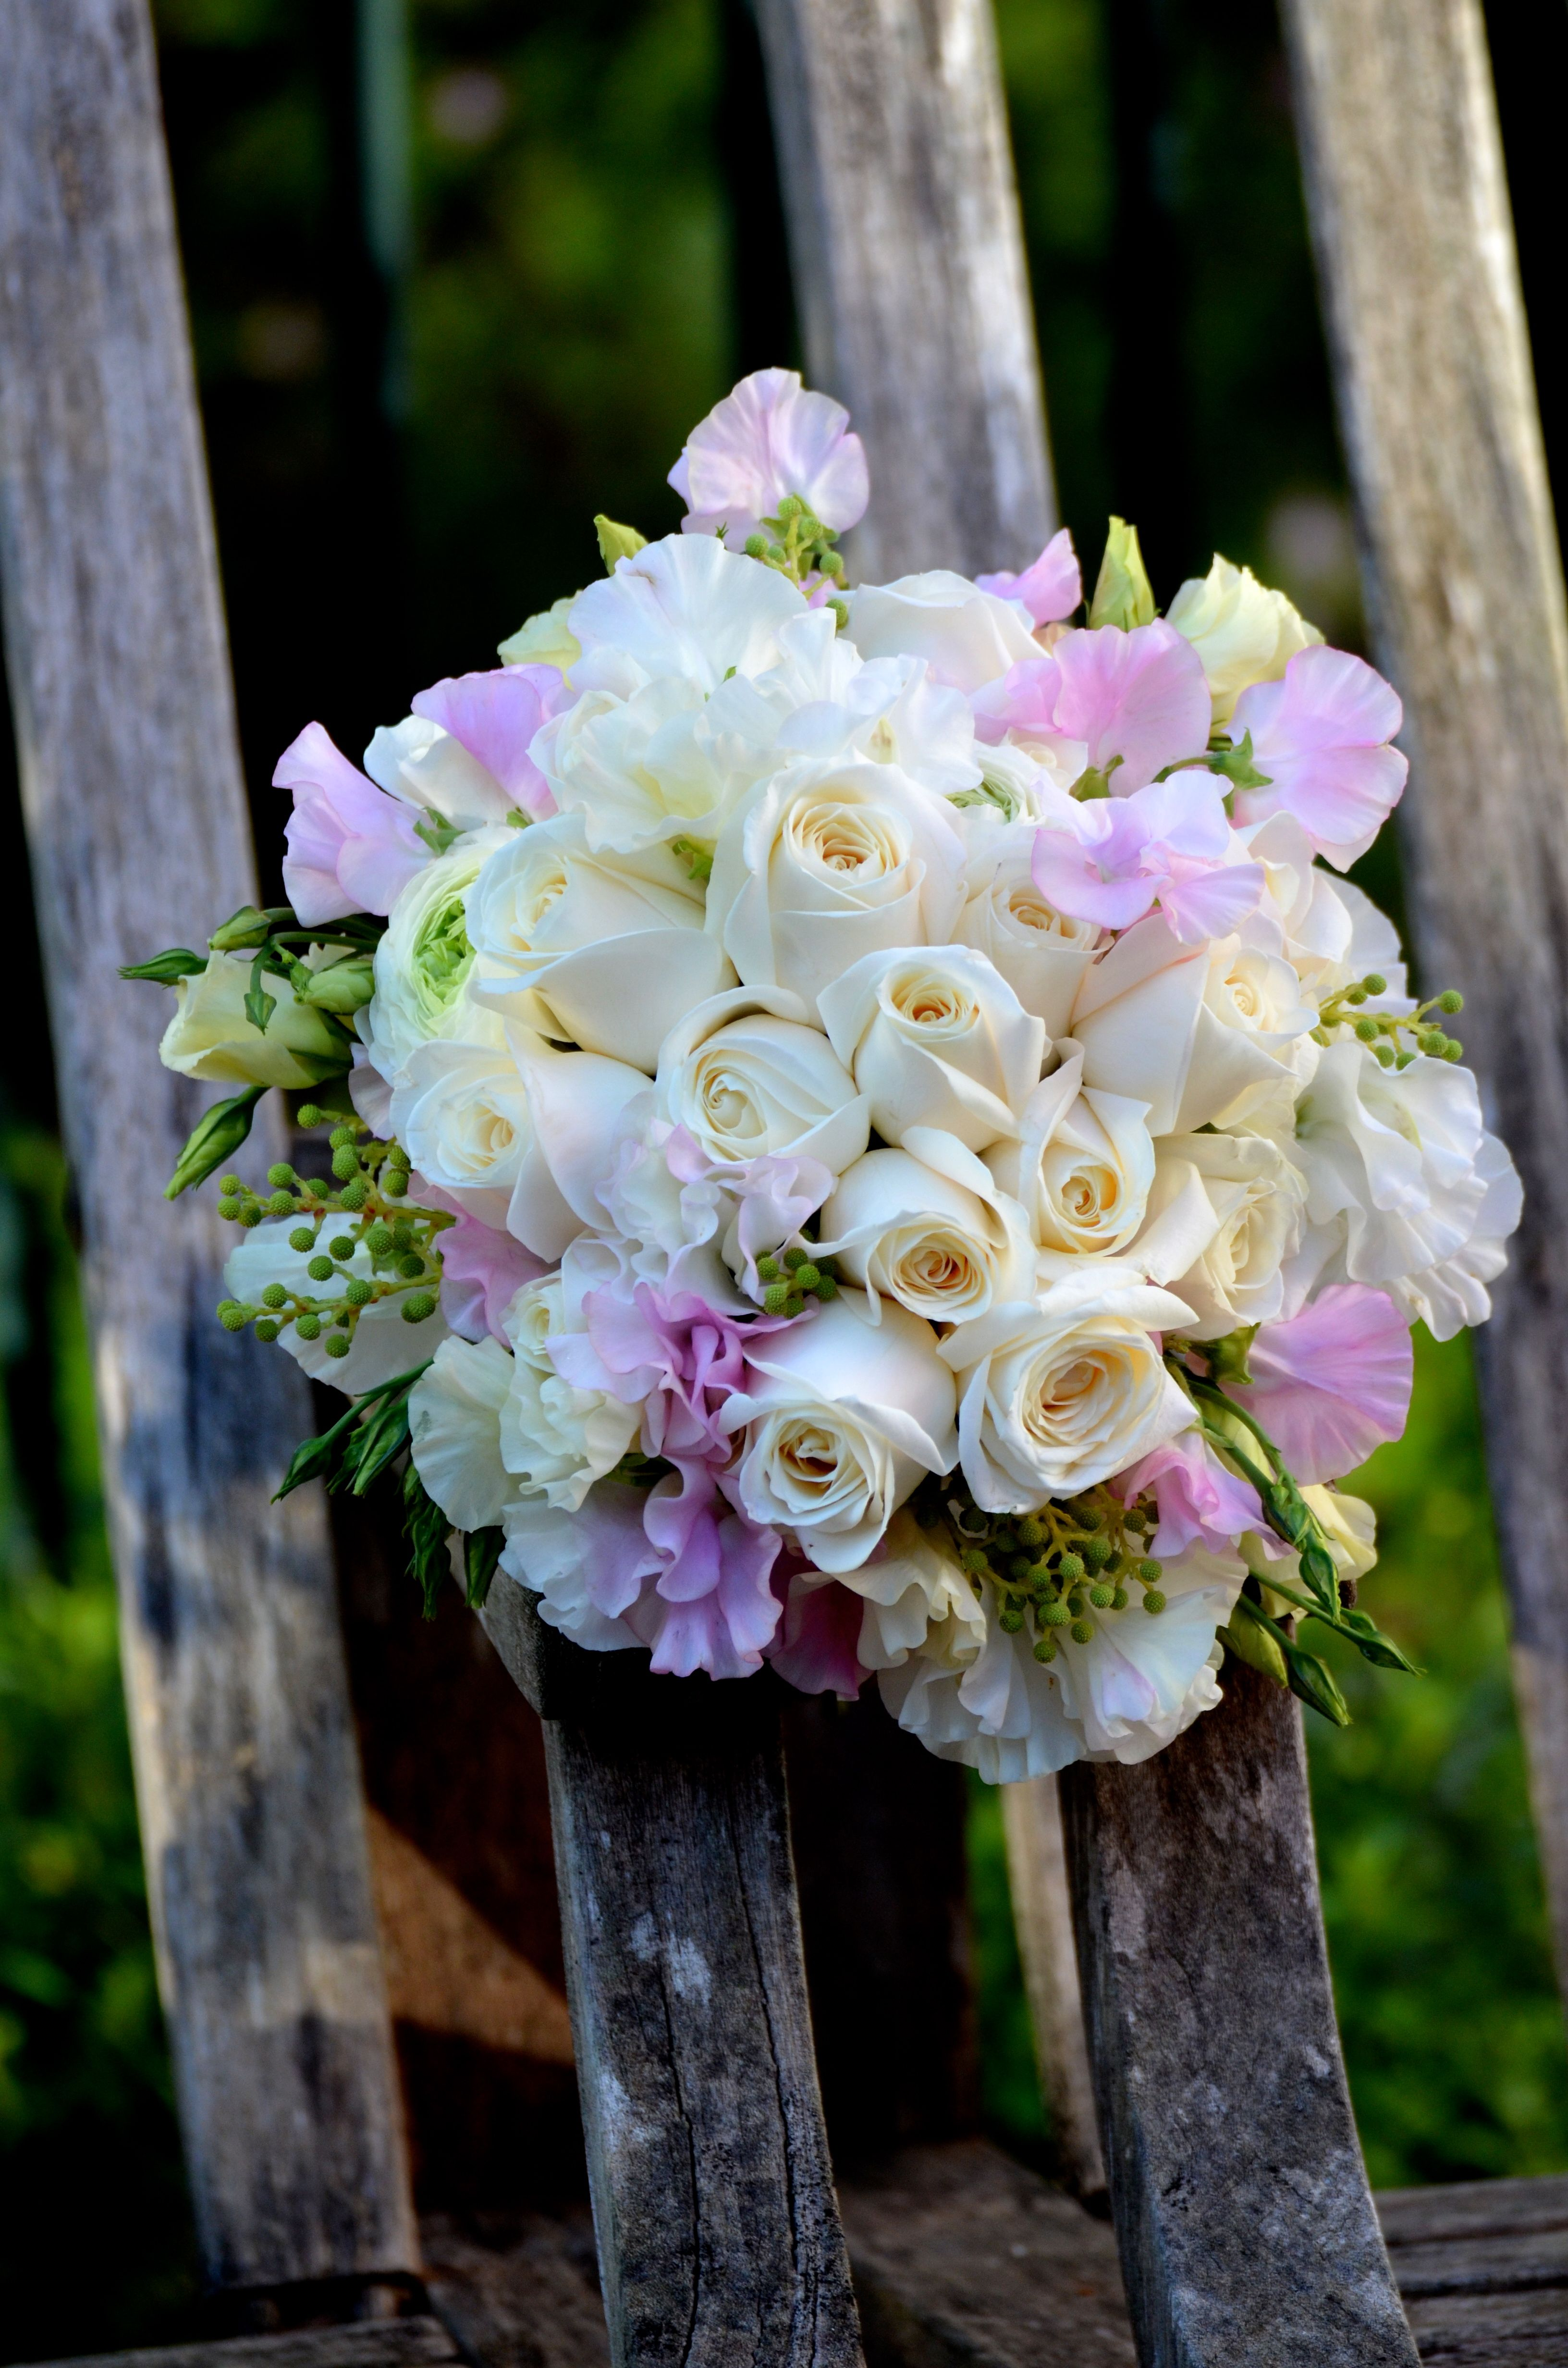 Roses And Sweet Peas Bouquet By Bouquet Chic Flowers Sweet Peas